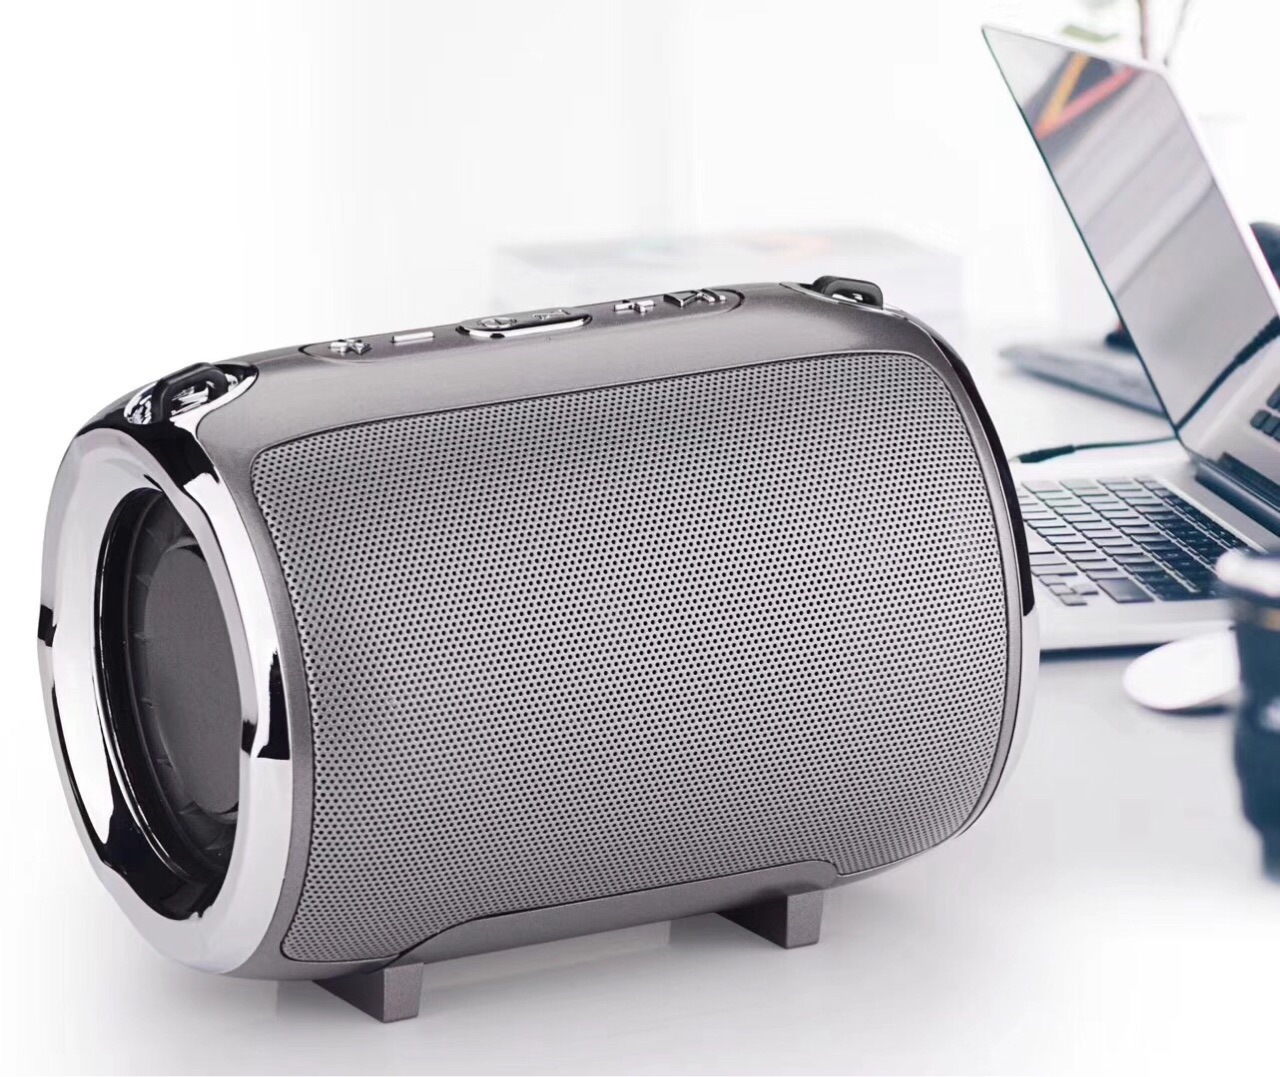 Portable Bluetooth Speaker S518 Straps Support FM/TF Card / AUX / Mobile Phone Call Audio Notebook Speaker Silver